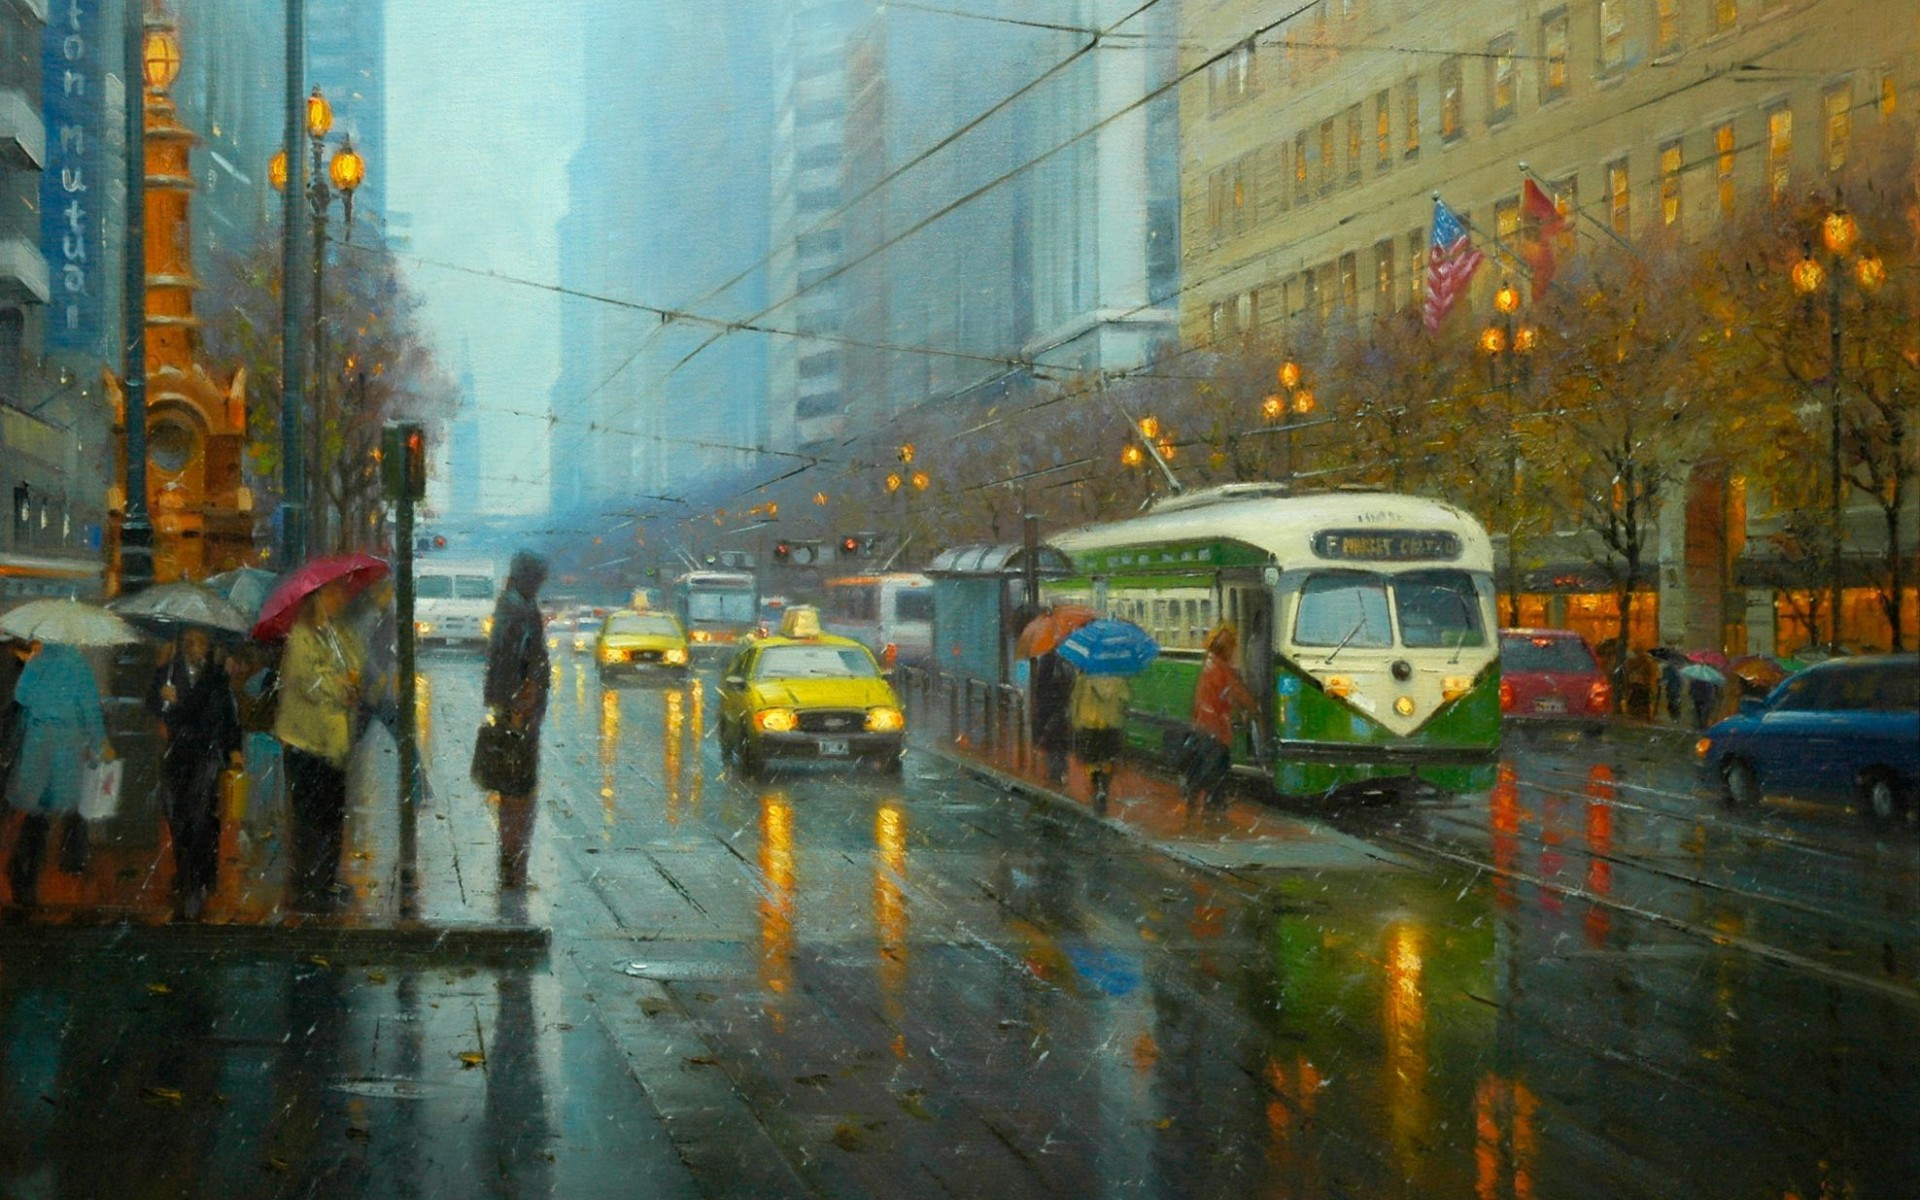 Painting Art Po Pin Lin Street City Rain Tram People Umbrellas Taxi Lights Lamps Cars Road Wire Flags America Wallpaper